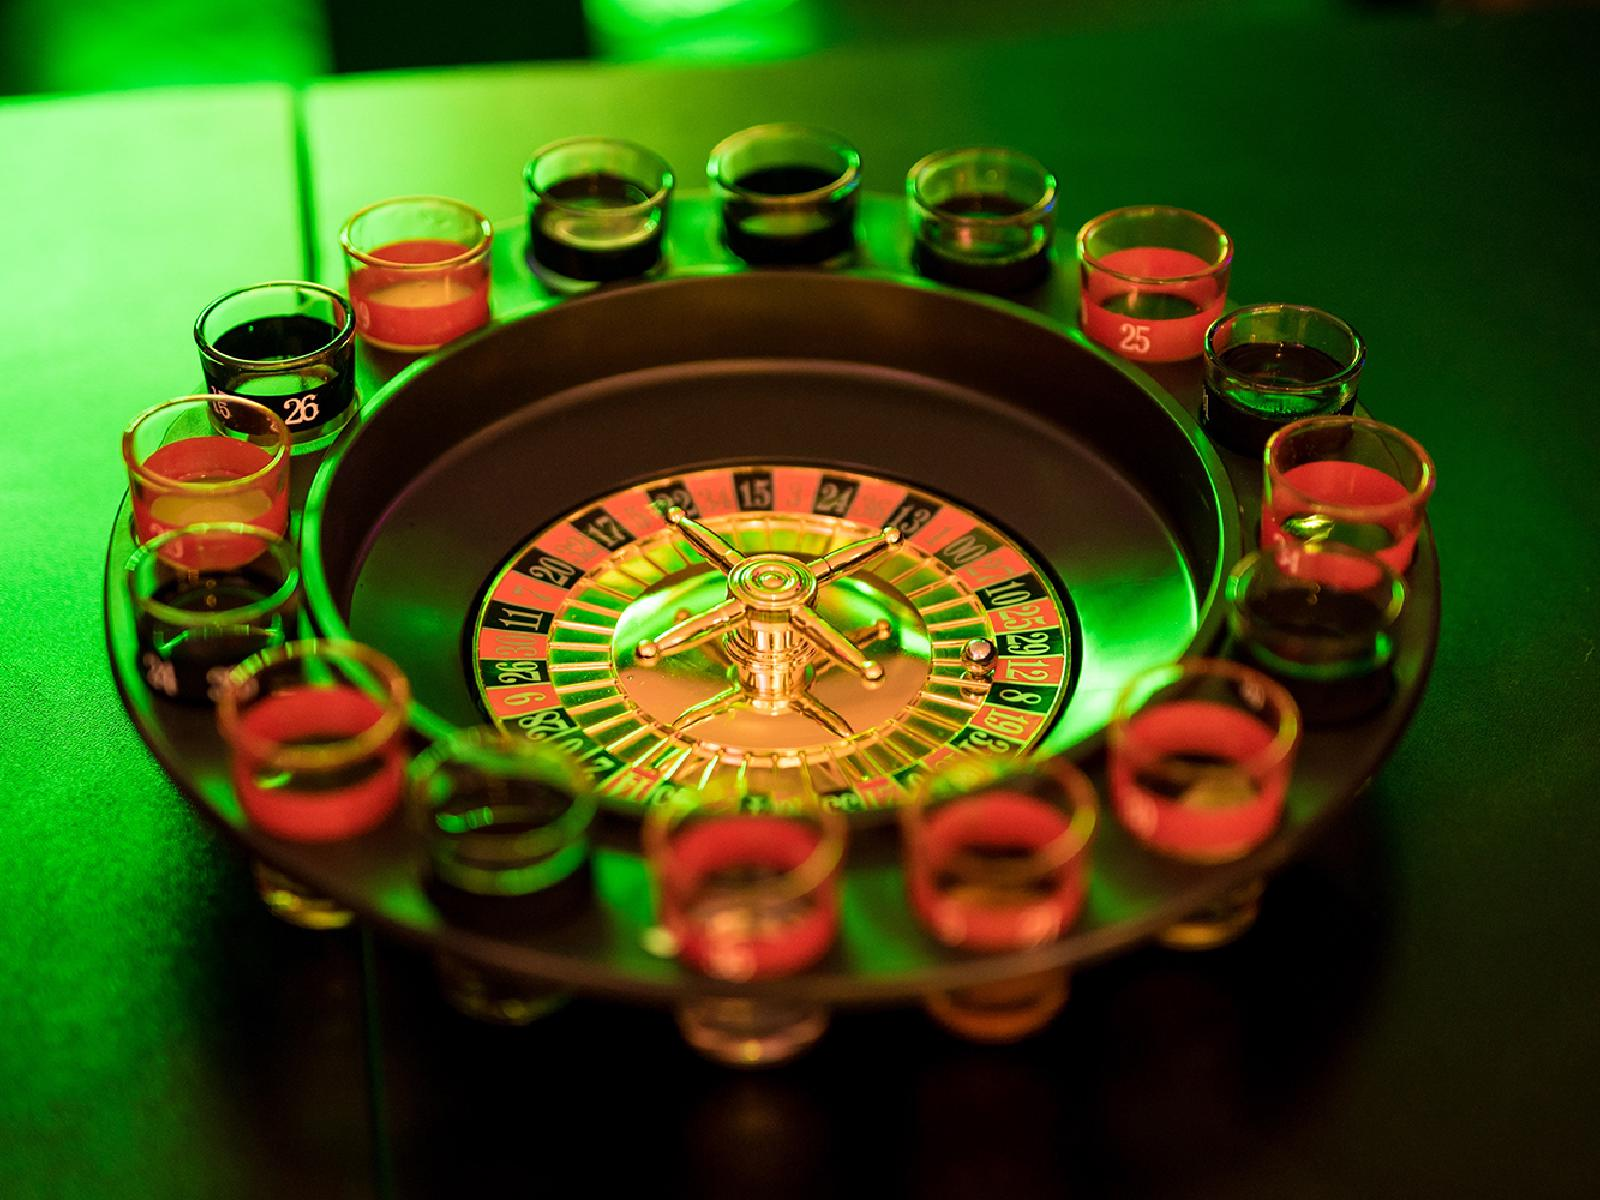 Insight on Kinds of Roulette to Enjoy